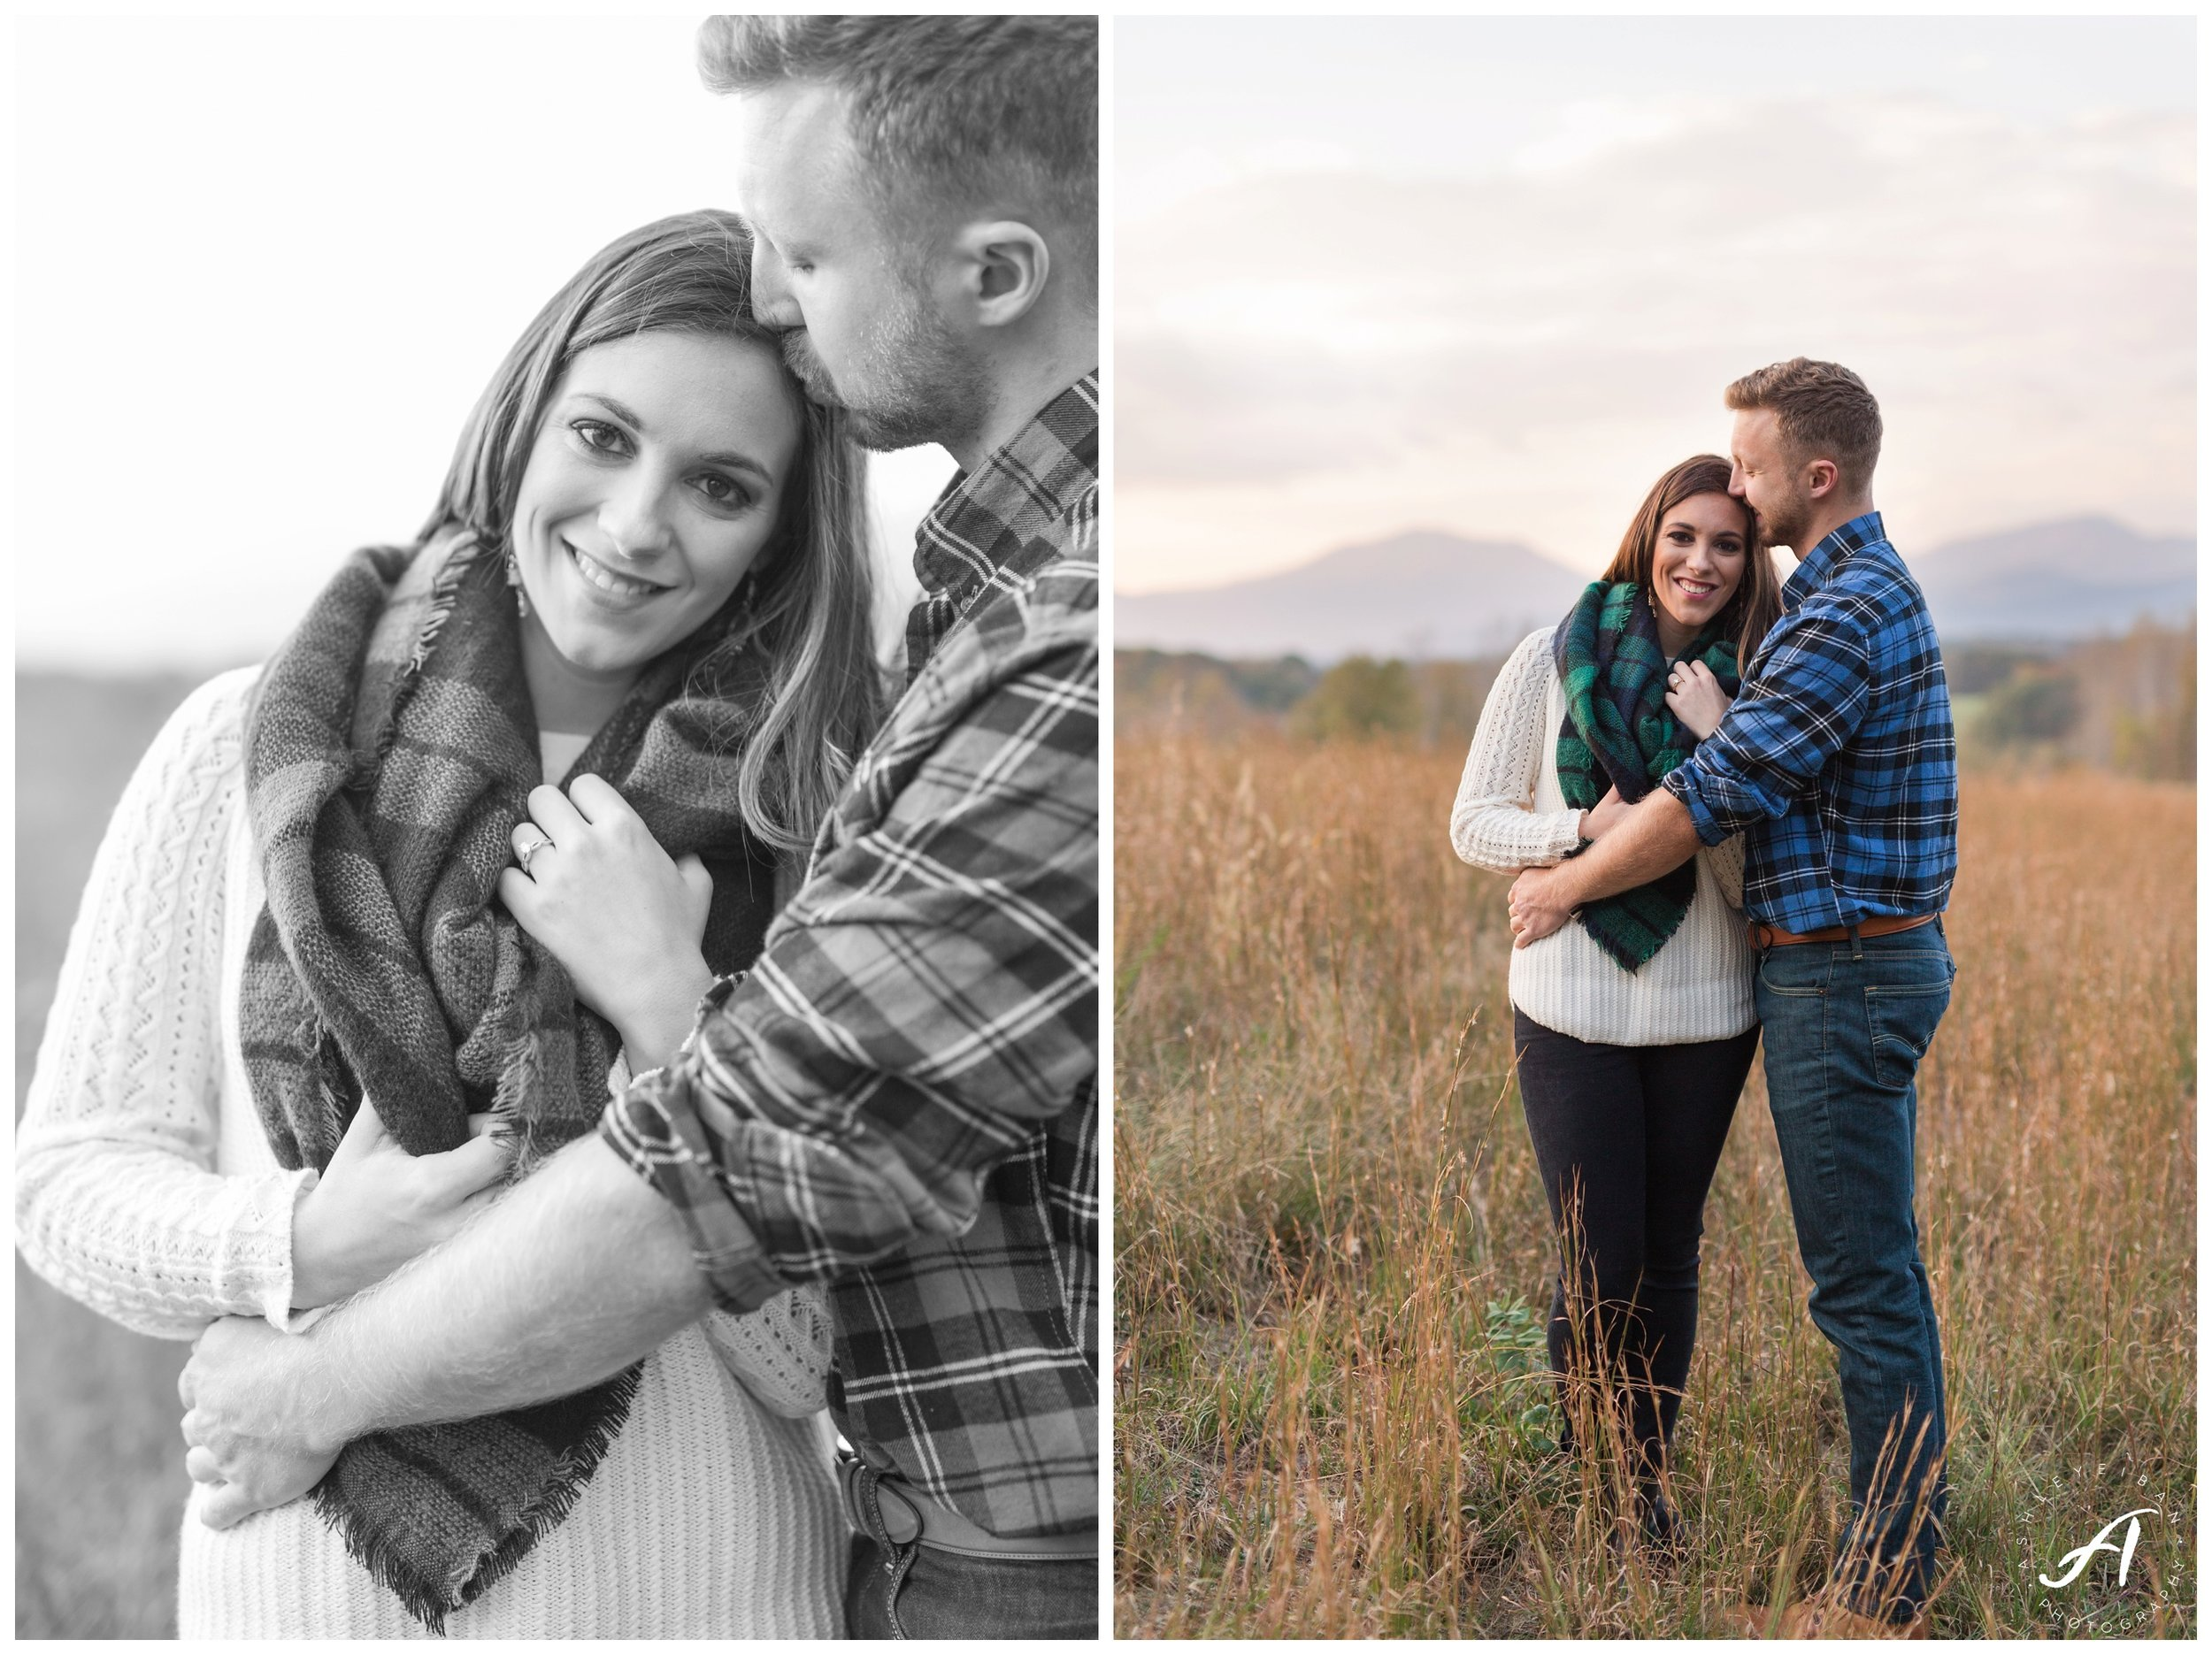 Mountain view fall engagement session at Sierra Vista in Lynchburg, Virginia || www.ashleyeiban.com